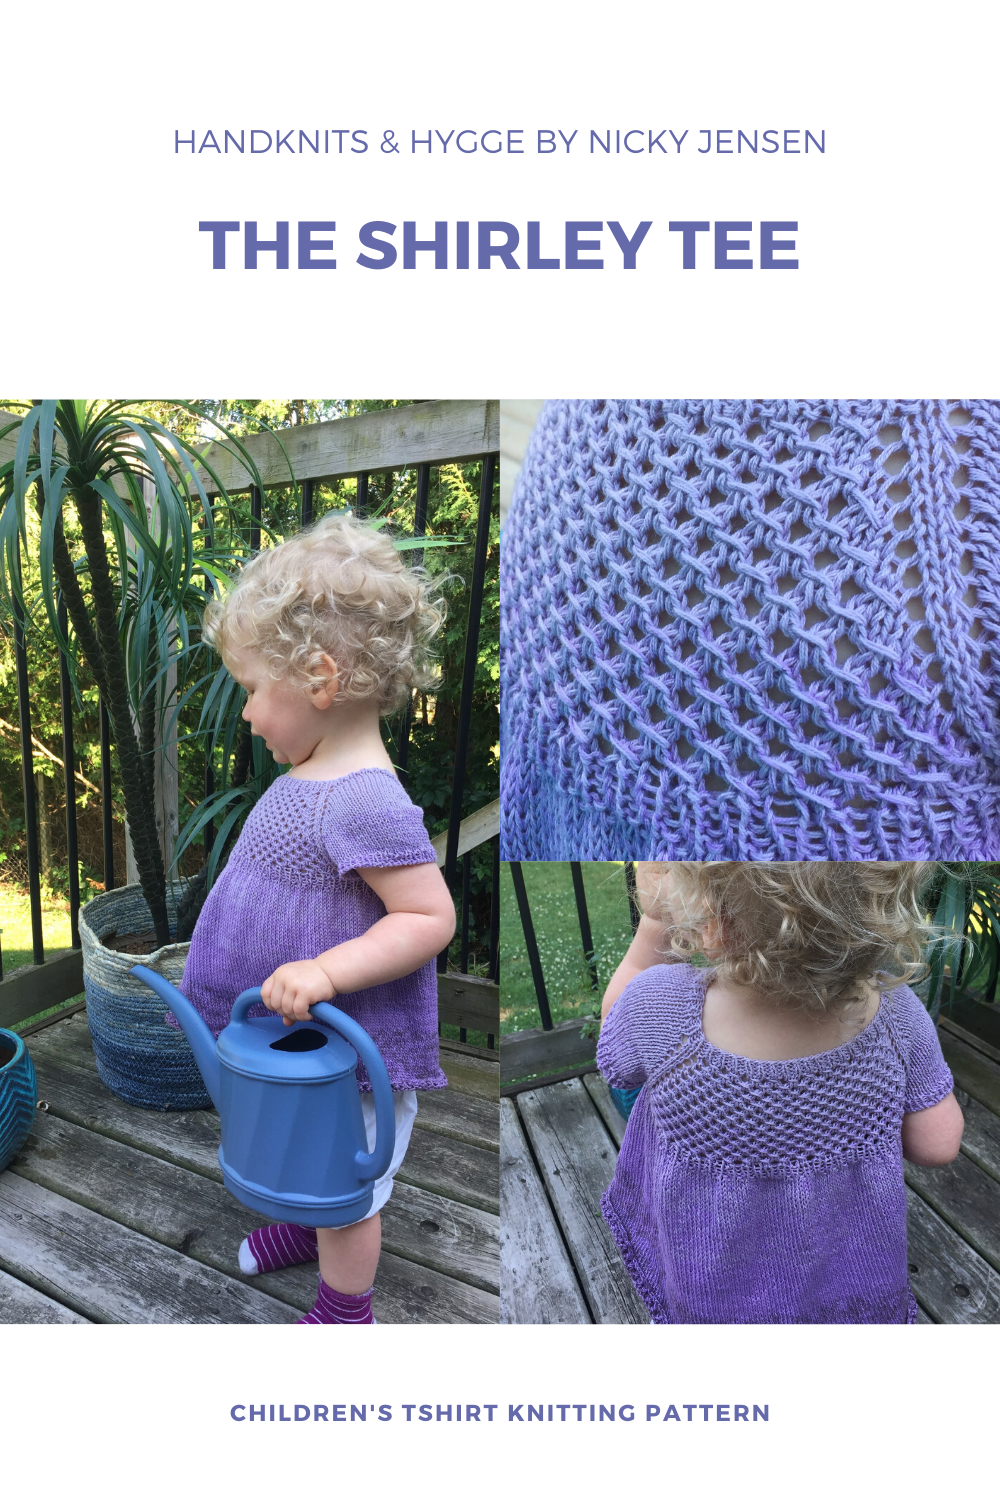 A blonde toddler in a garden wearing a lilac ombre handknit babydoll t-shirt with lace bodice.